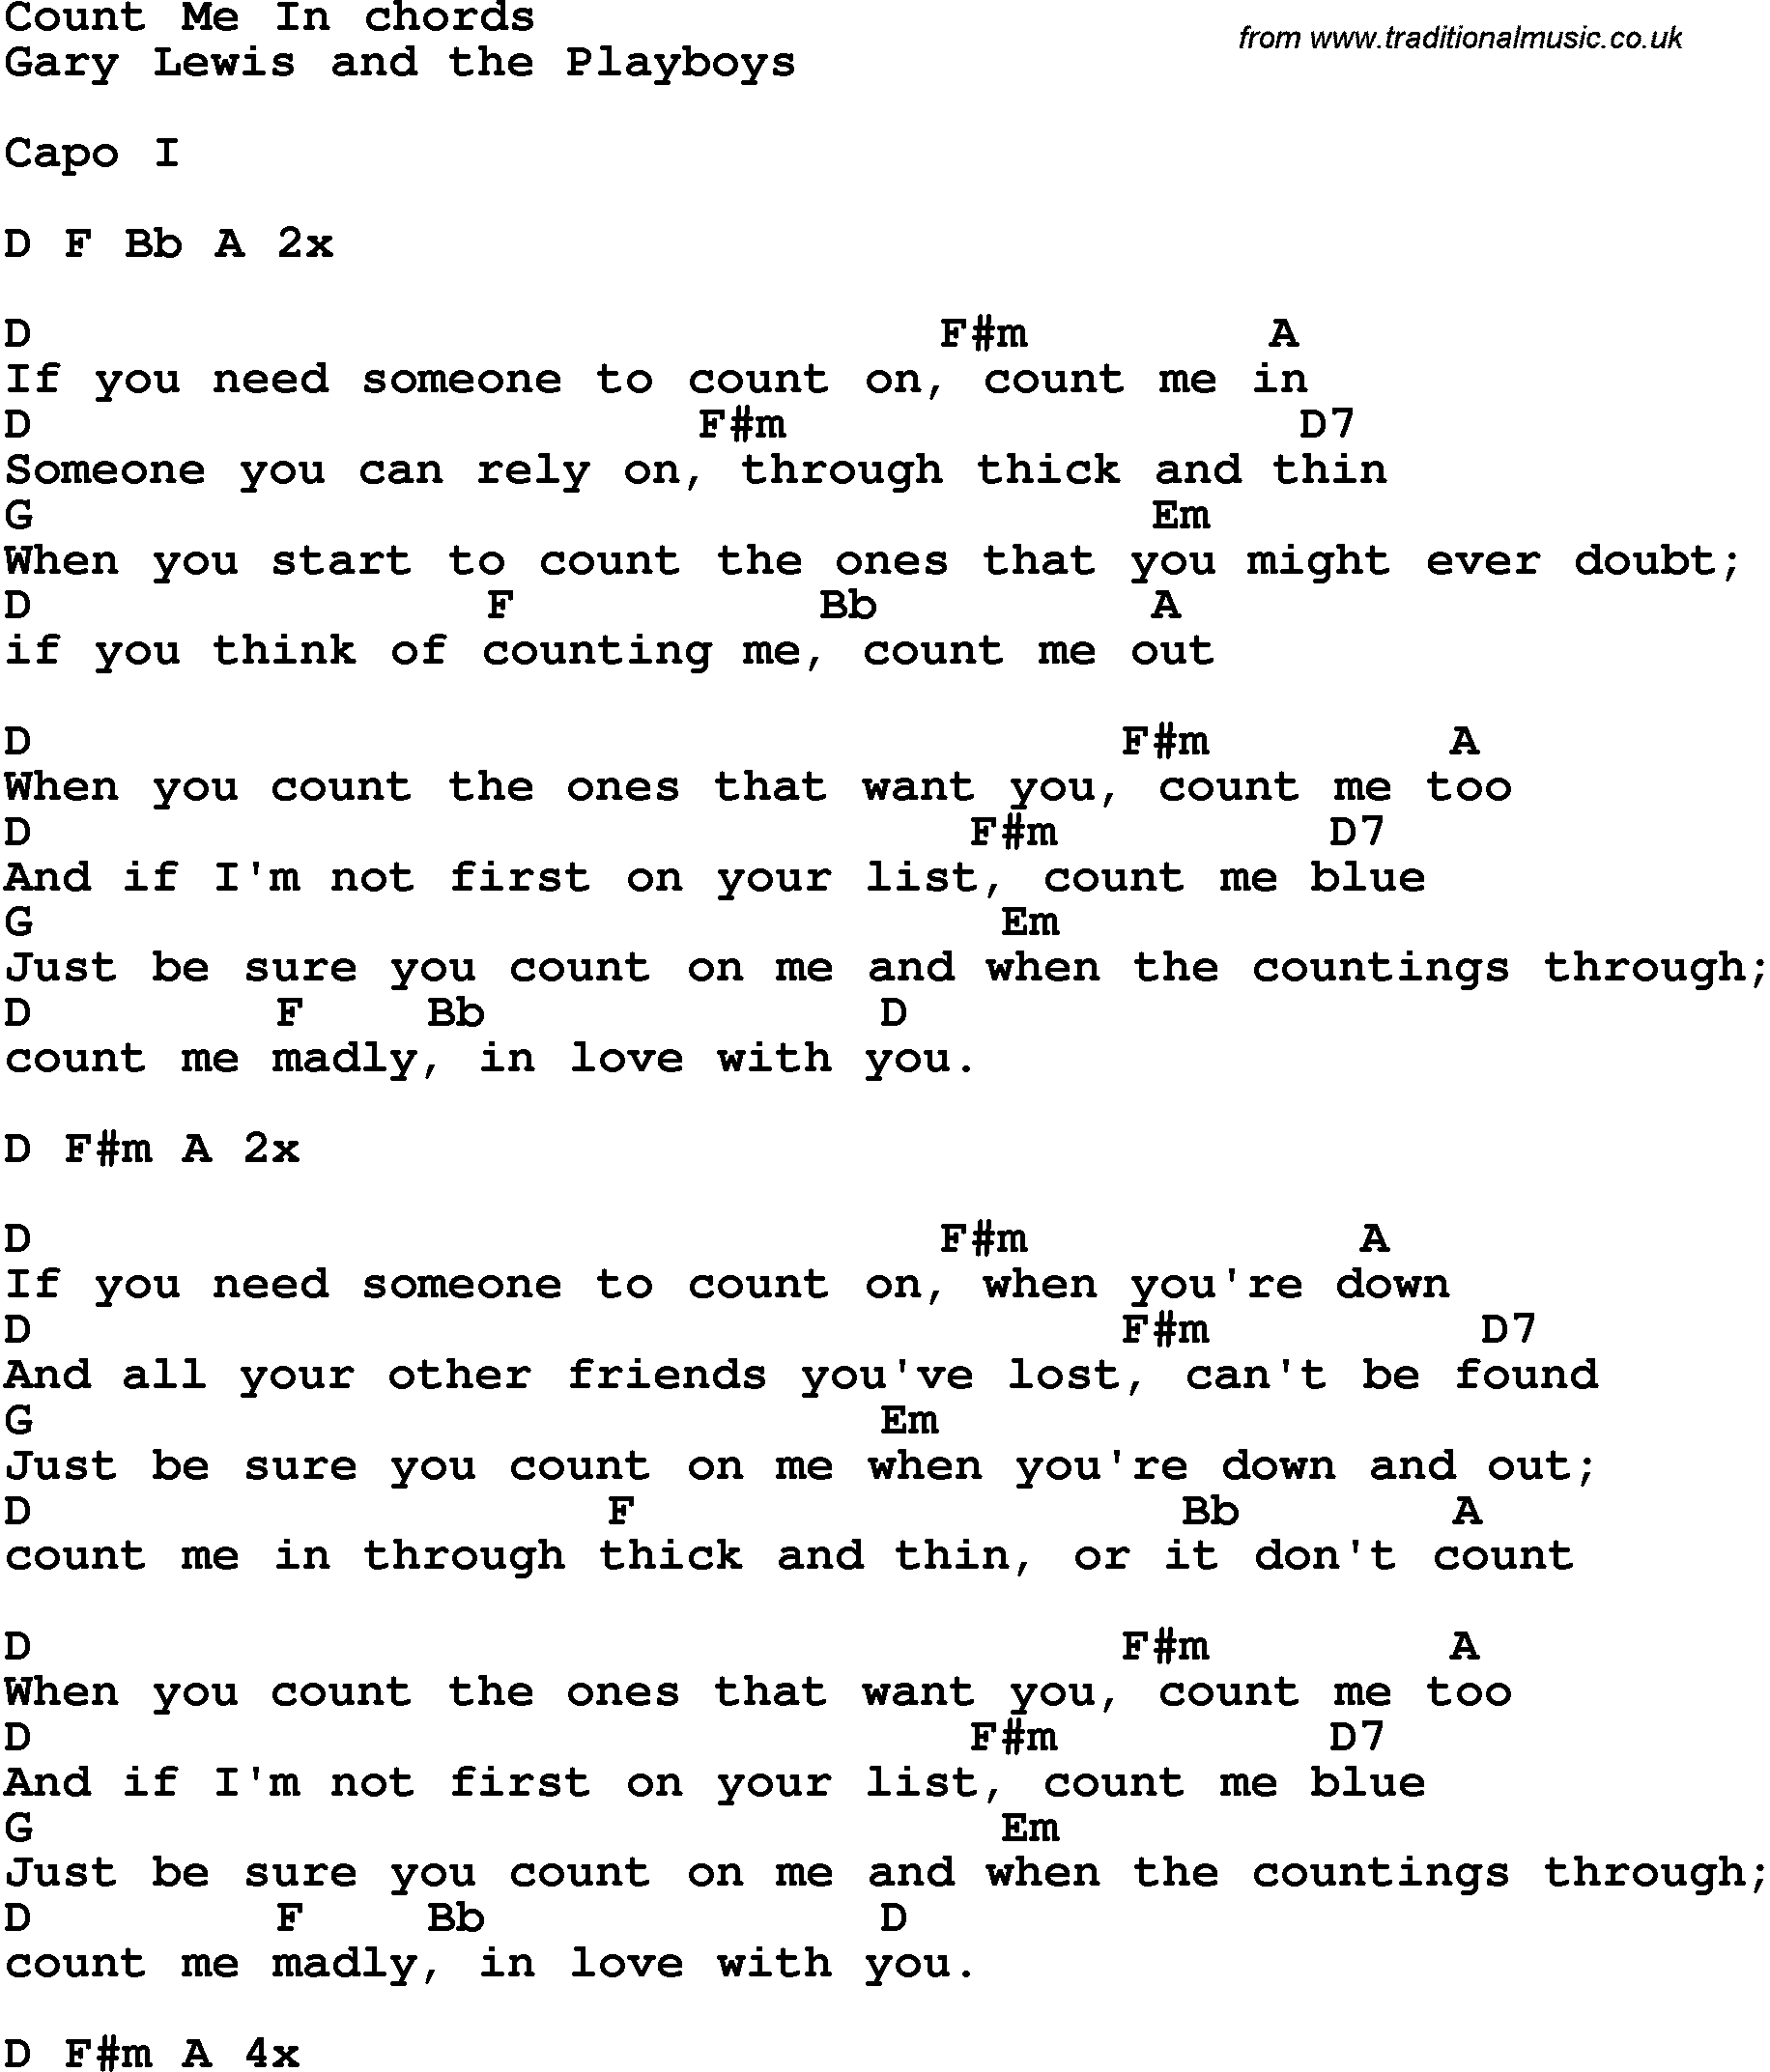 Count On Me Chords Song Lyrics With Guitar Chords For Count Me In